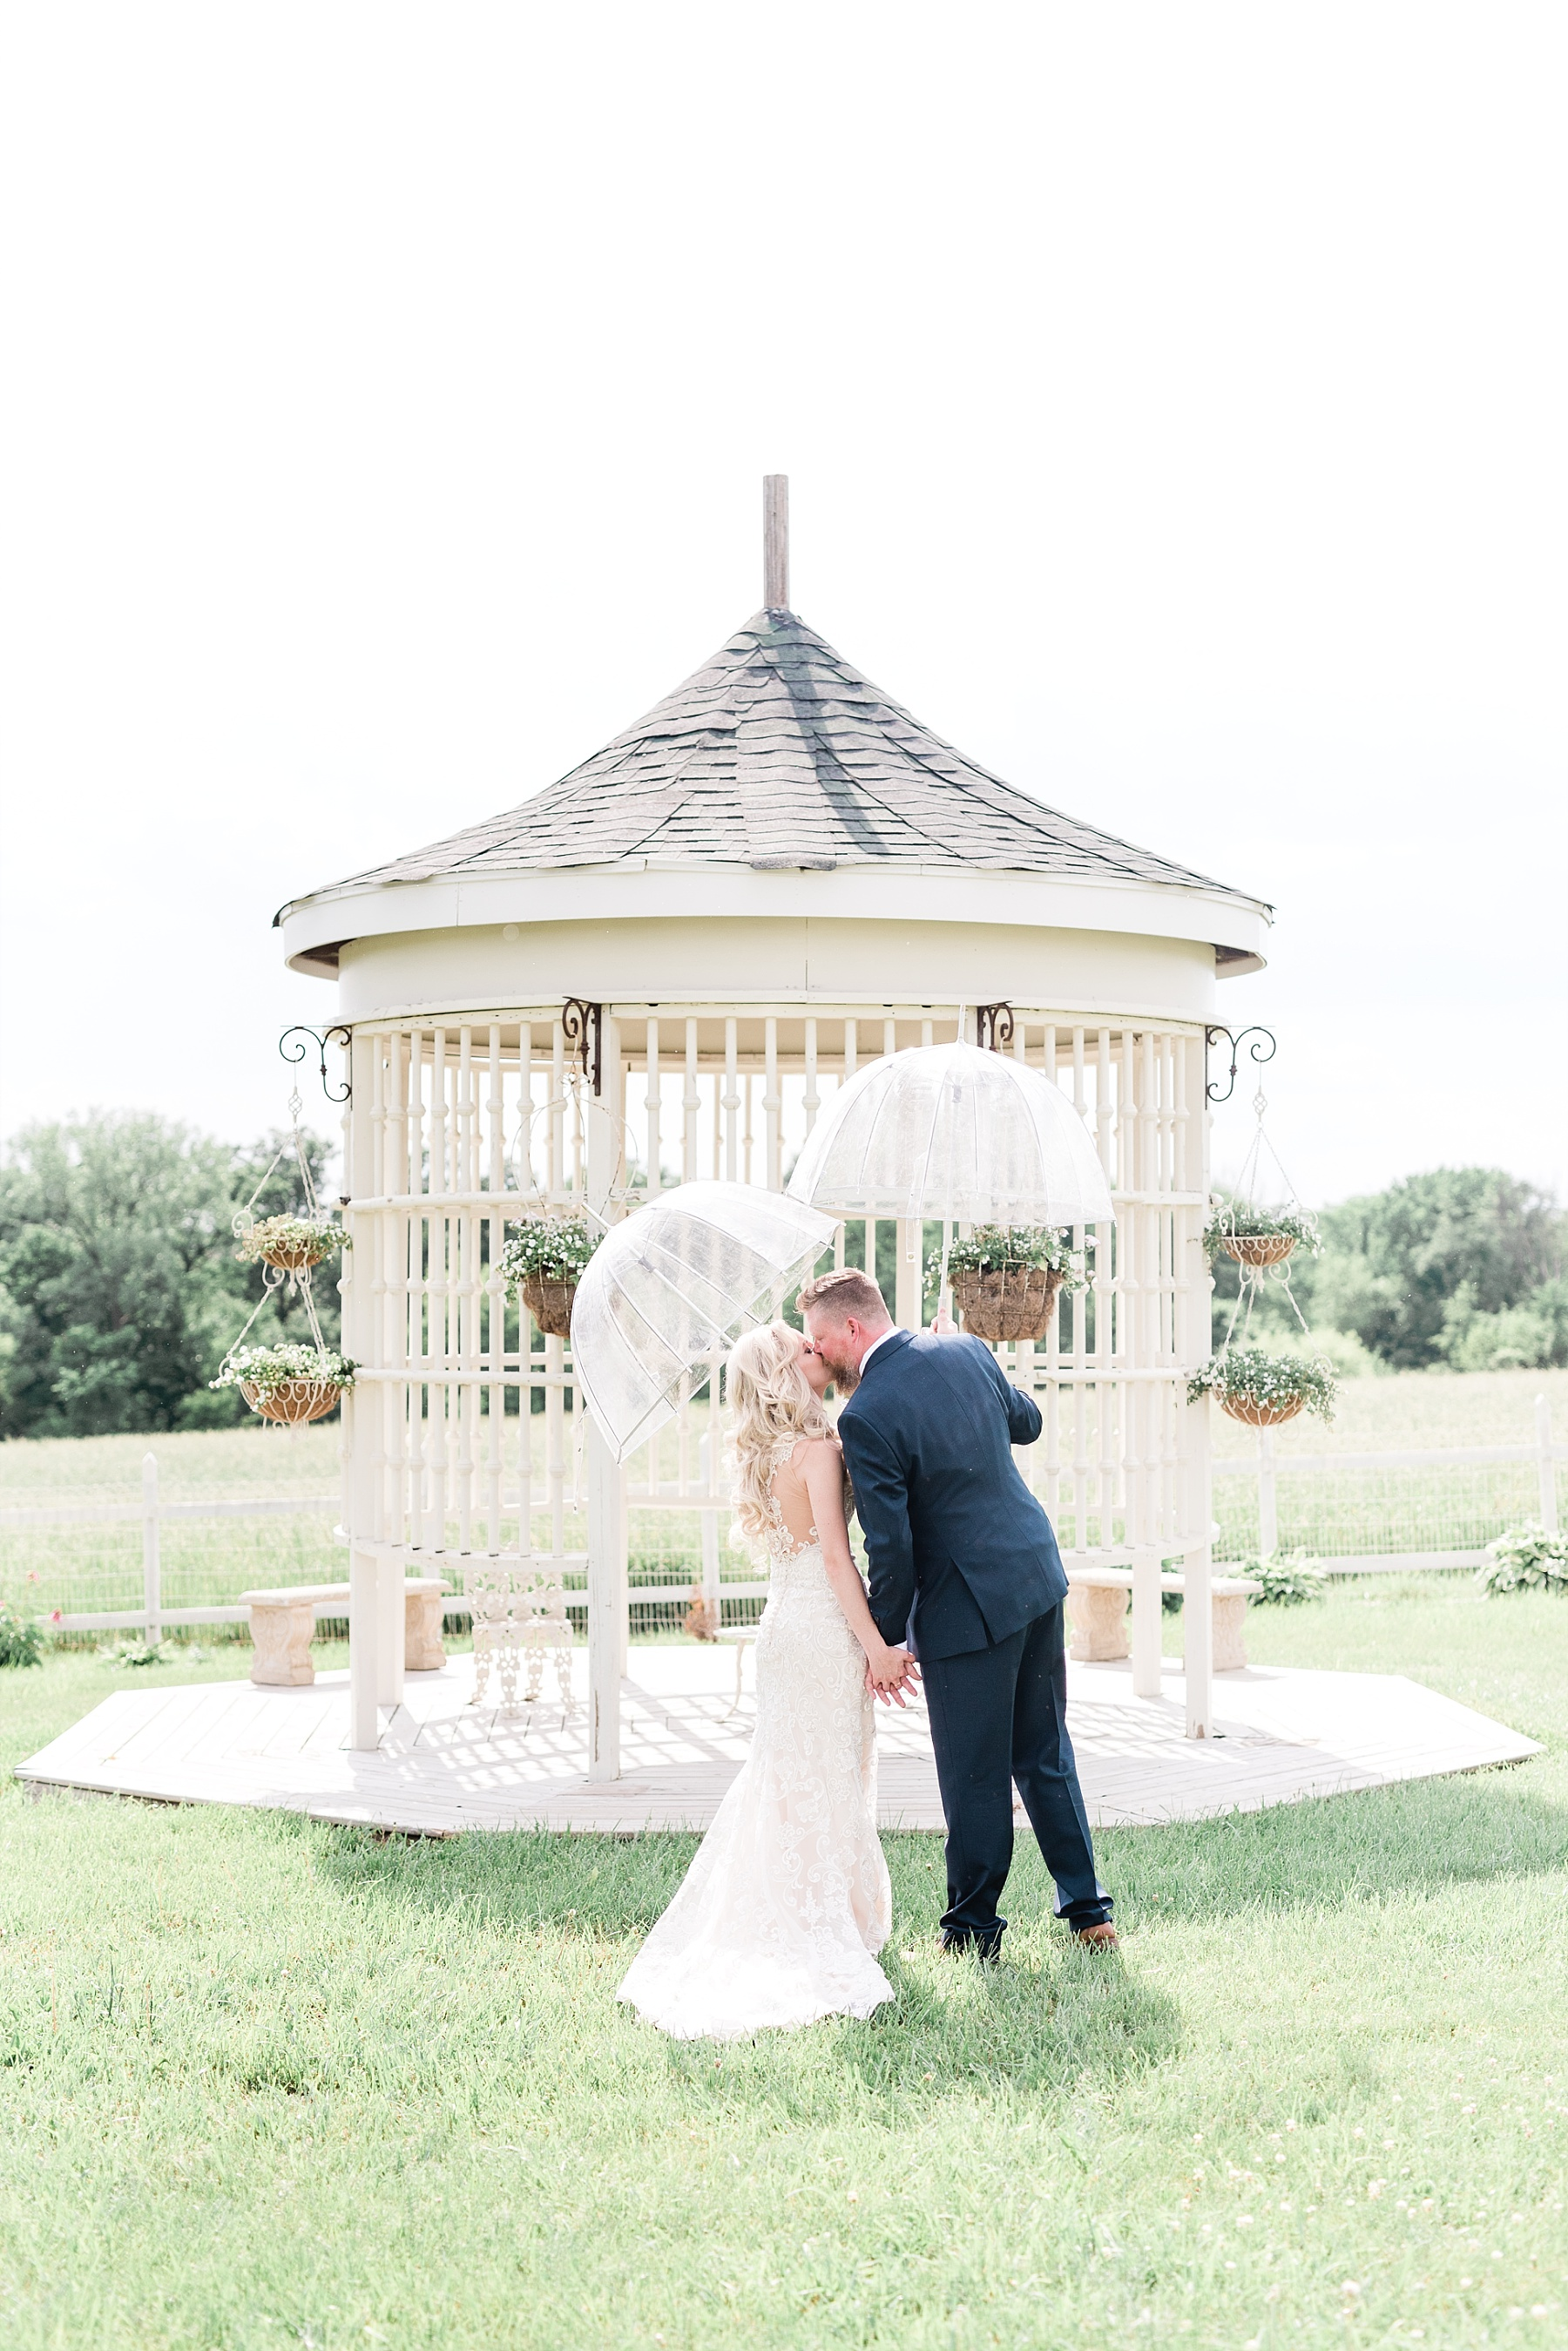 Light and Airy Spring Shabby Chic Wedding at Bessie's Barn Iowa by Kelsi Kliethermes Photography_0023.jpg